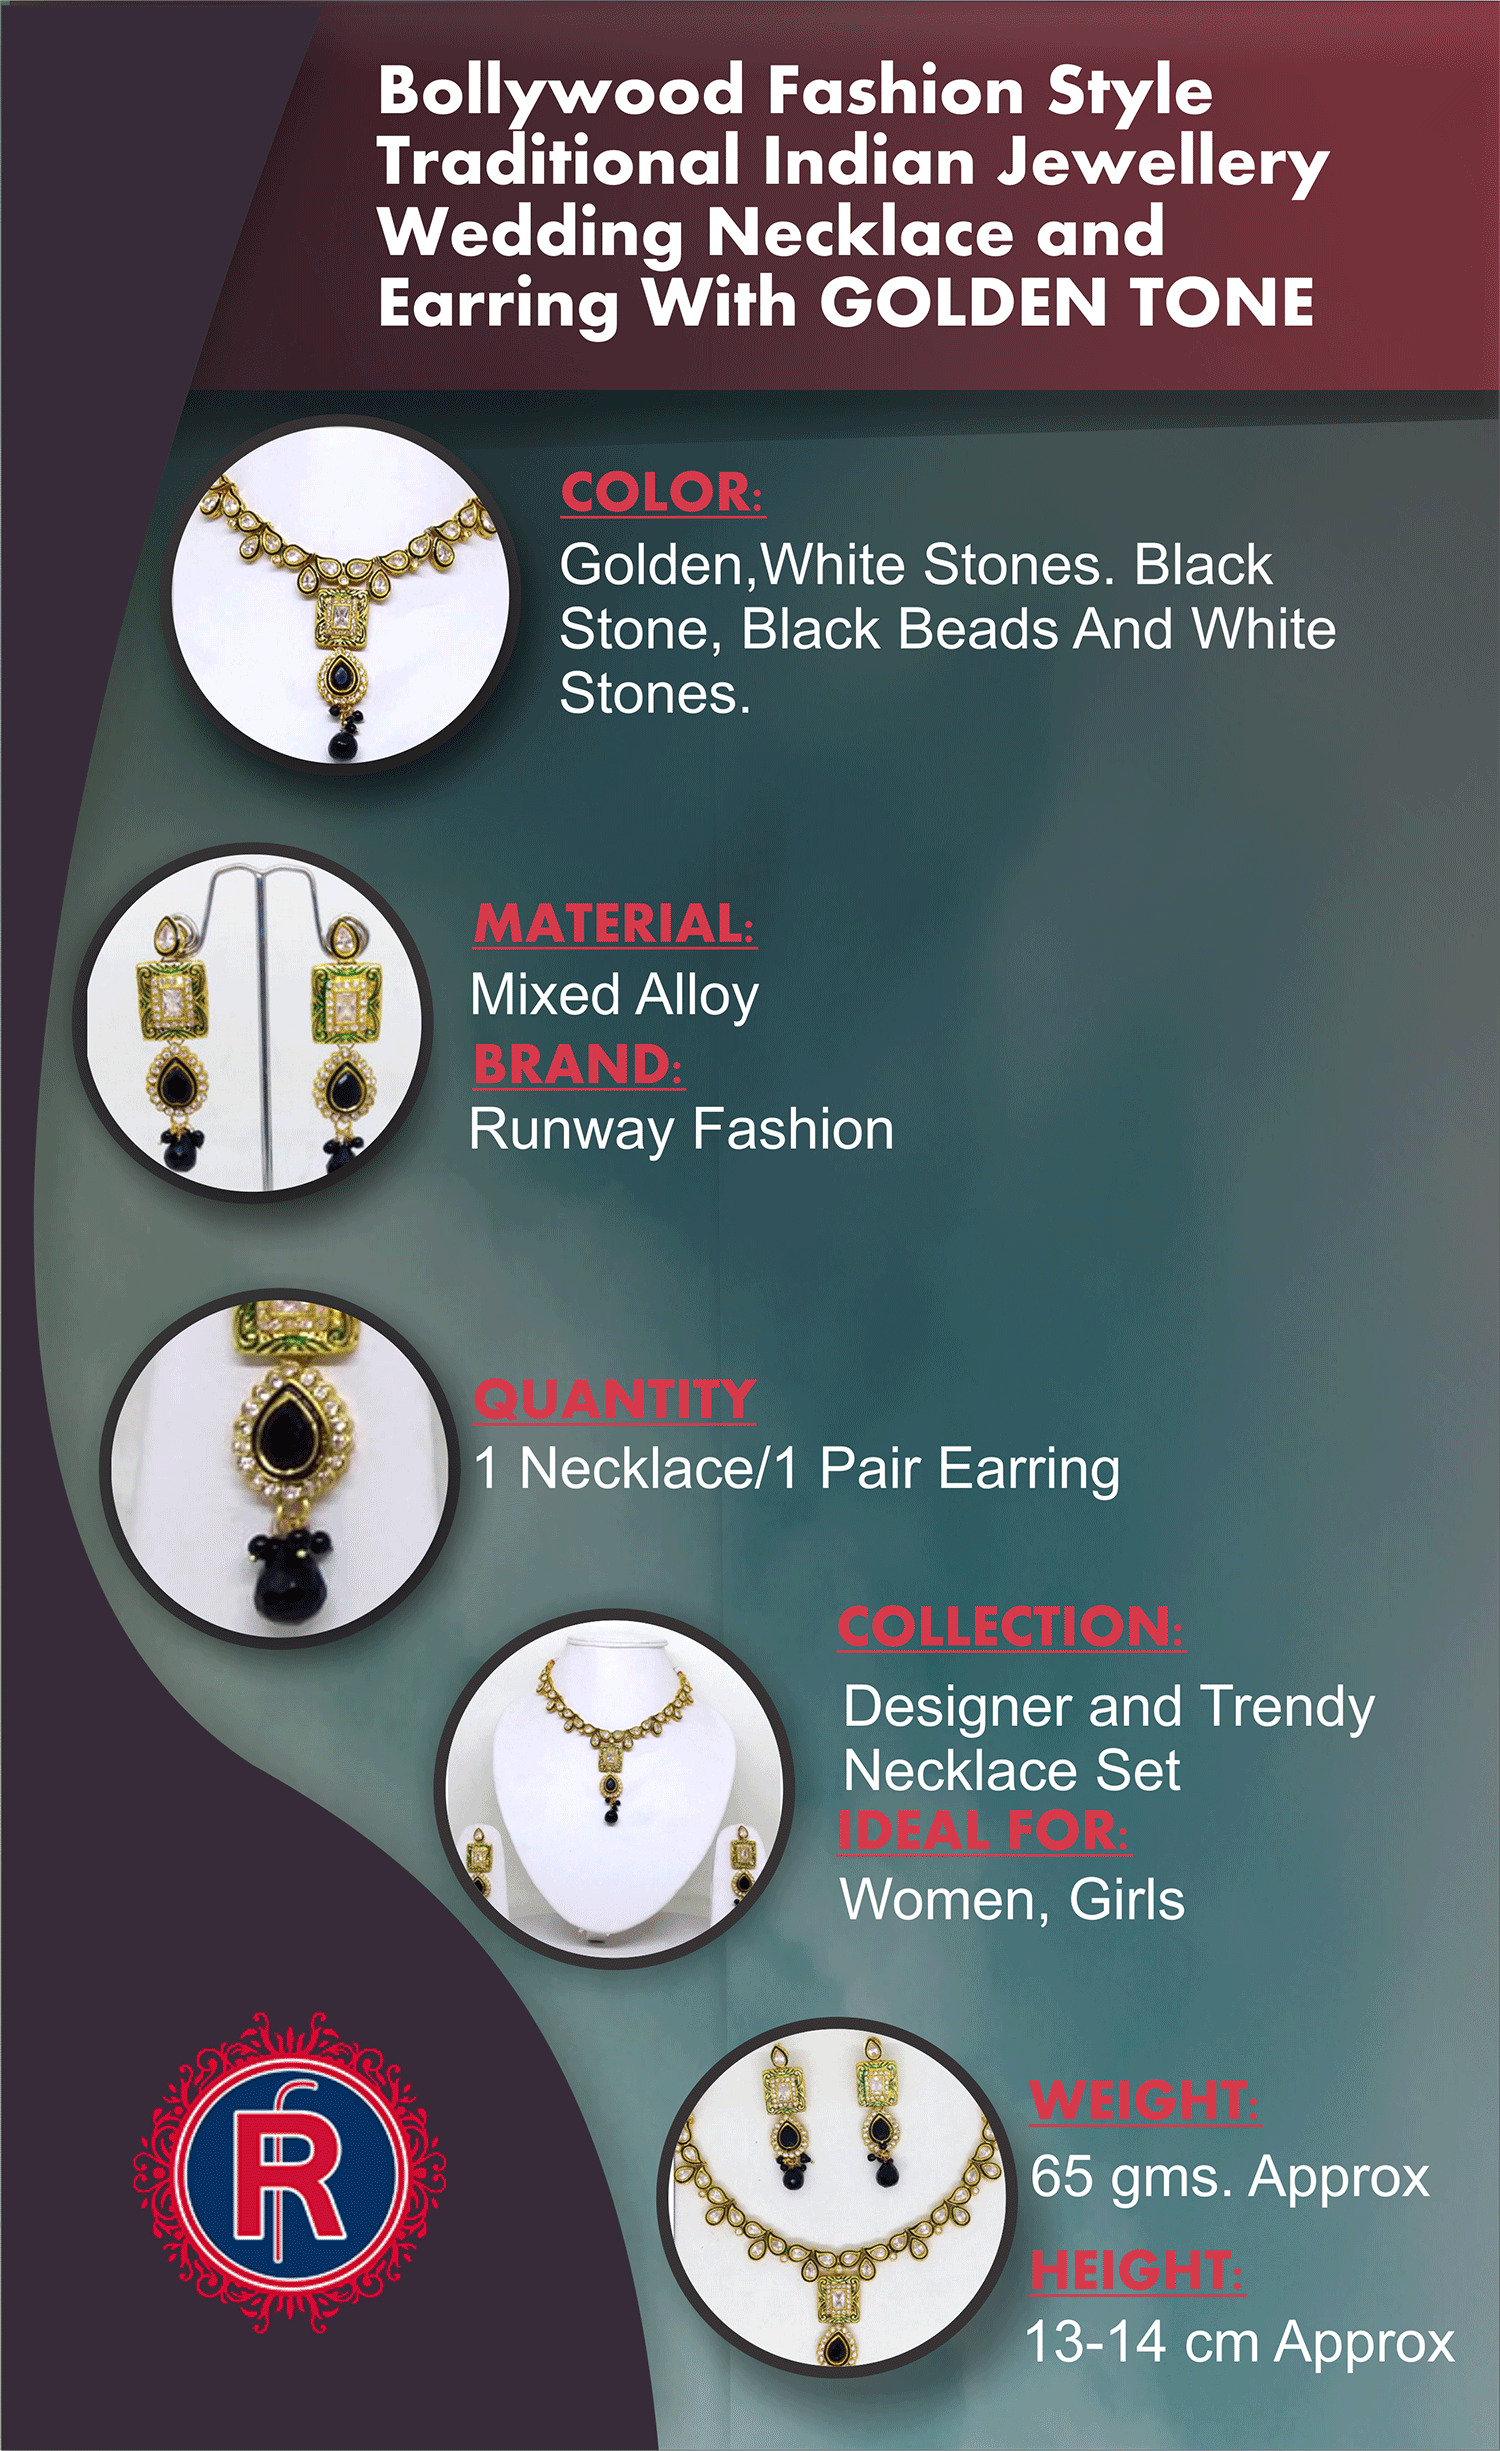 Bollywood Fashion Style Traditional Indian Jewellery Wedding Necklace and Earring With Golden Tone Infographic